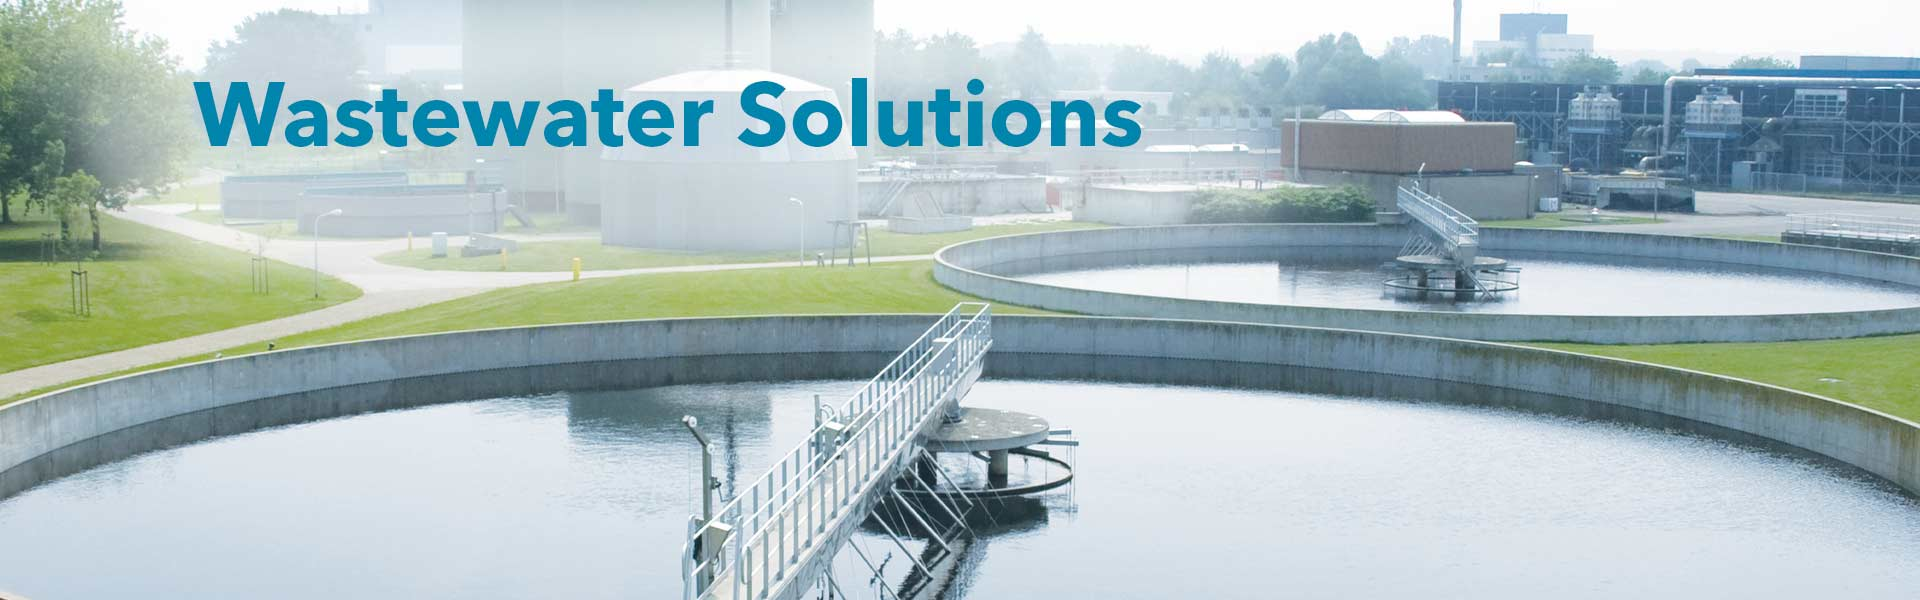 Wastewater Solutions from OI Analytical